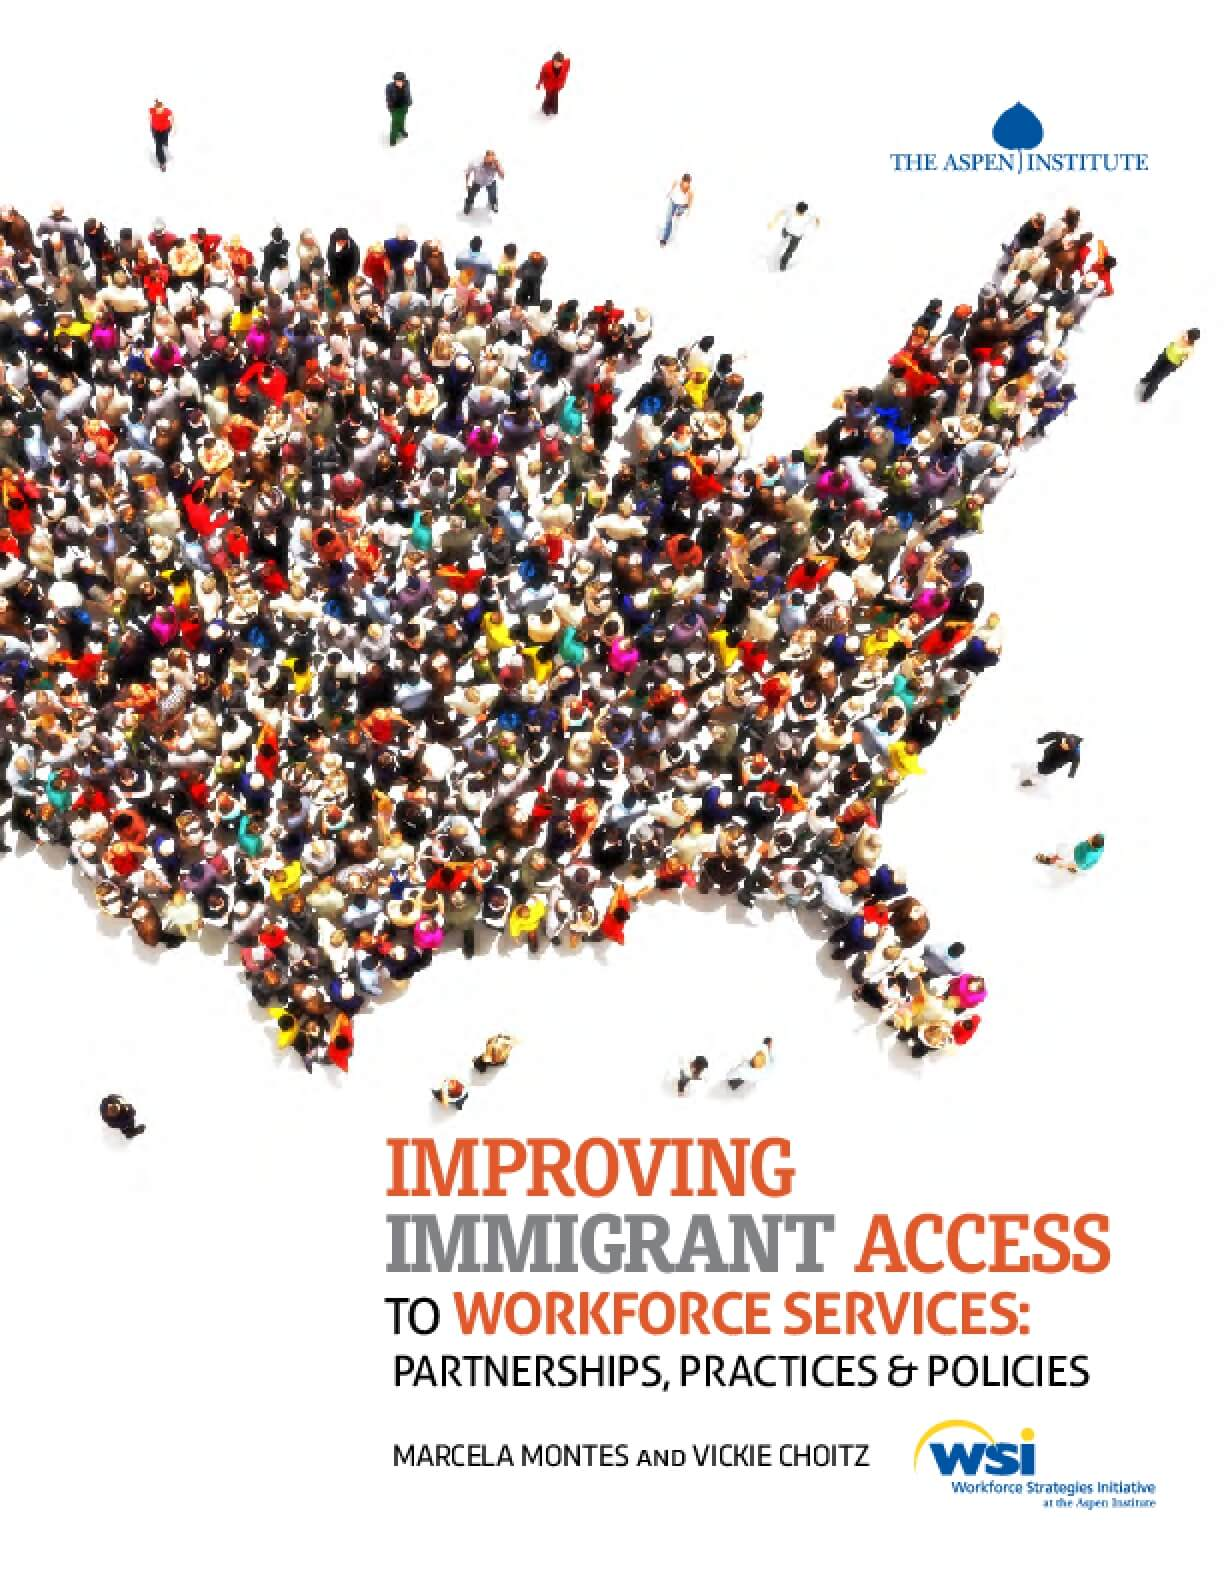 Improving Immigrant Access to Workforce Services: Partnerships, Practices & Policies